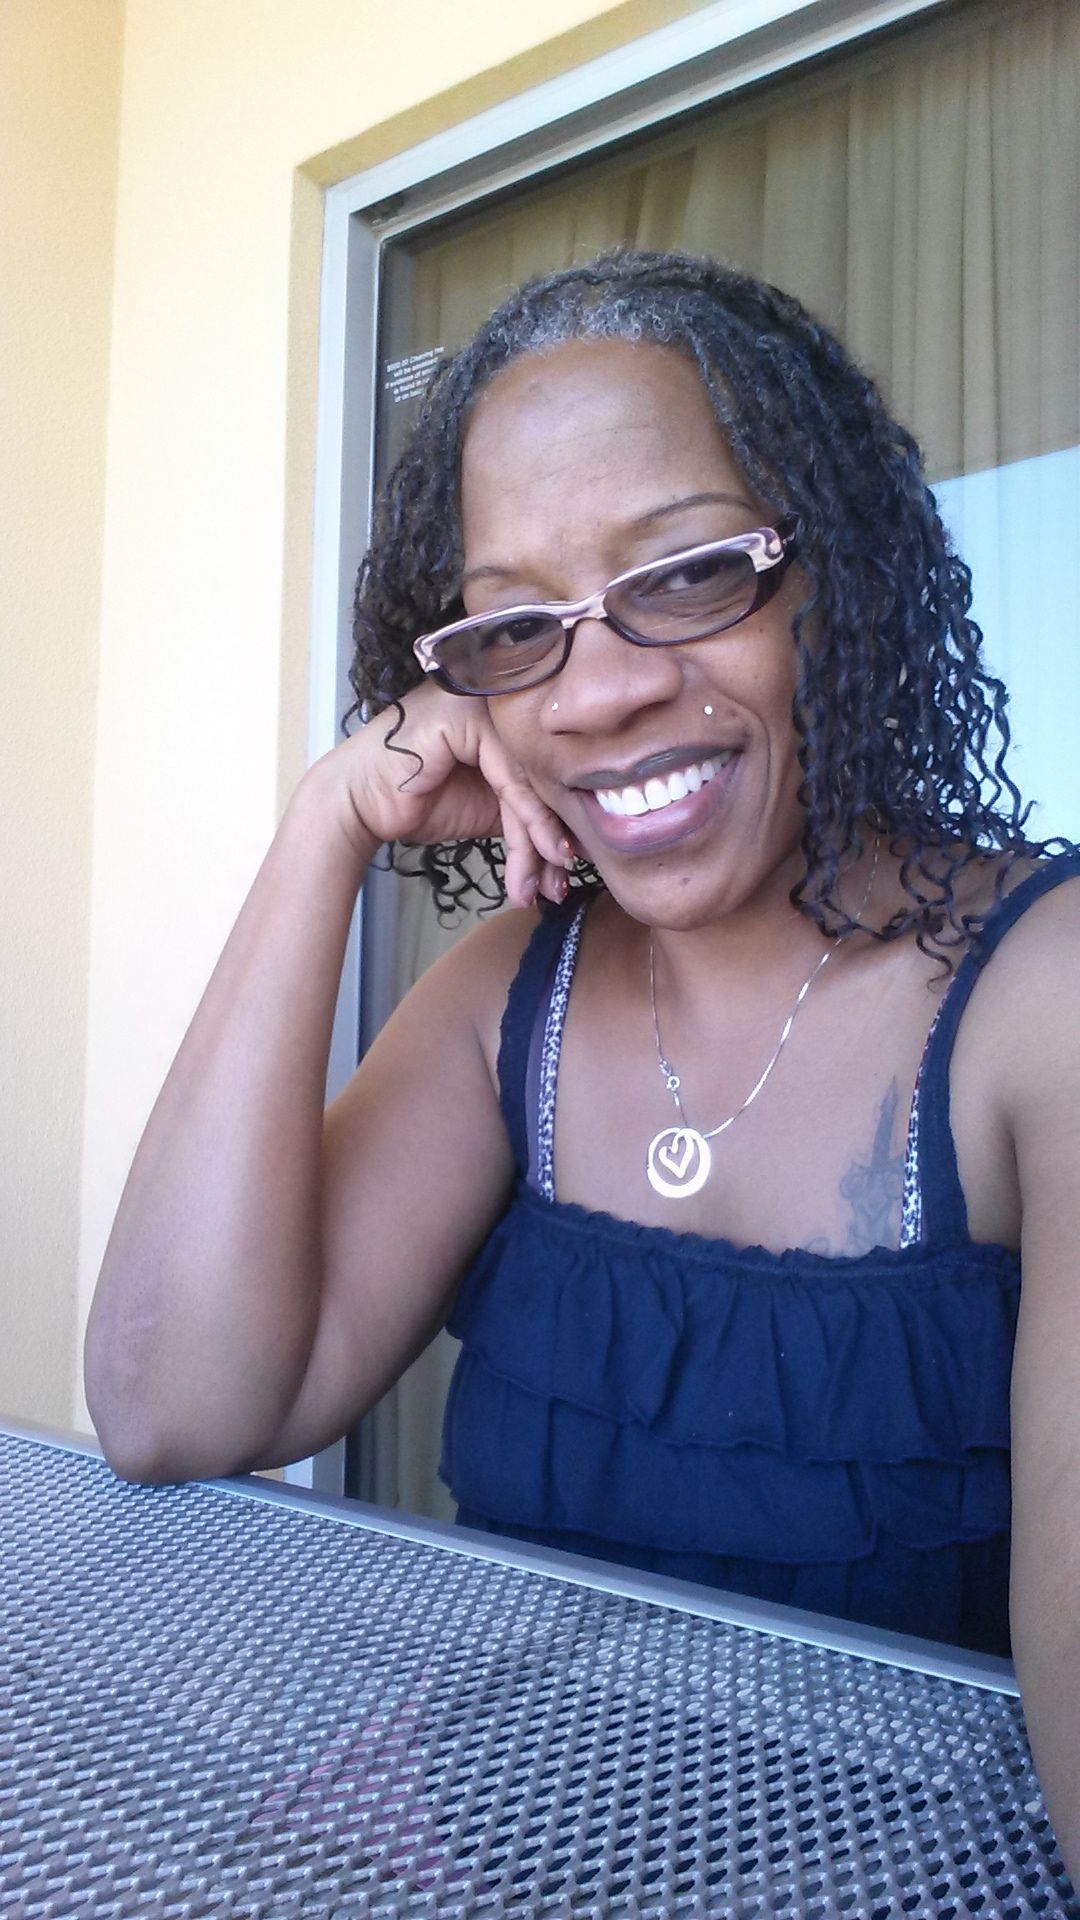 maricopa christian dating site Search for local single black christian men in arizona  whether you are  seeking just a date, a pen pal, a casual or a serious relationship, you can meet.